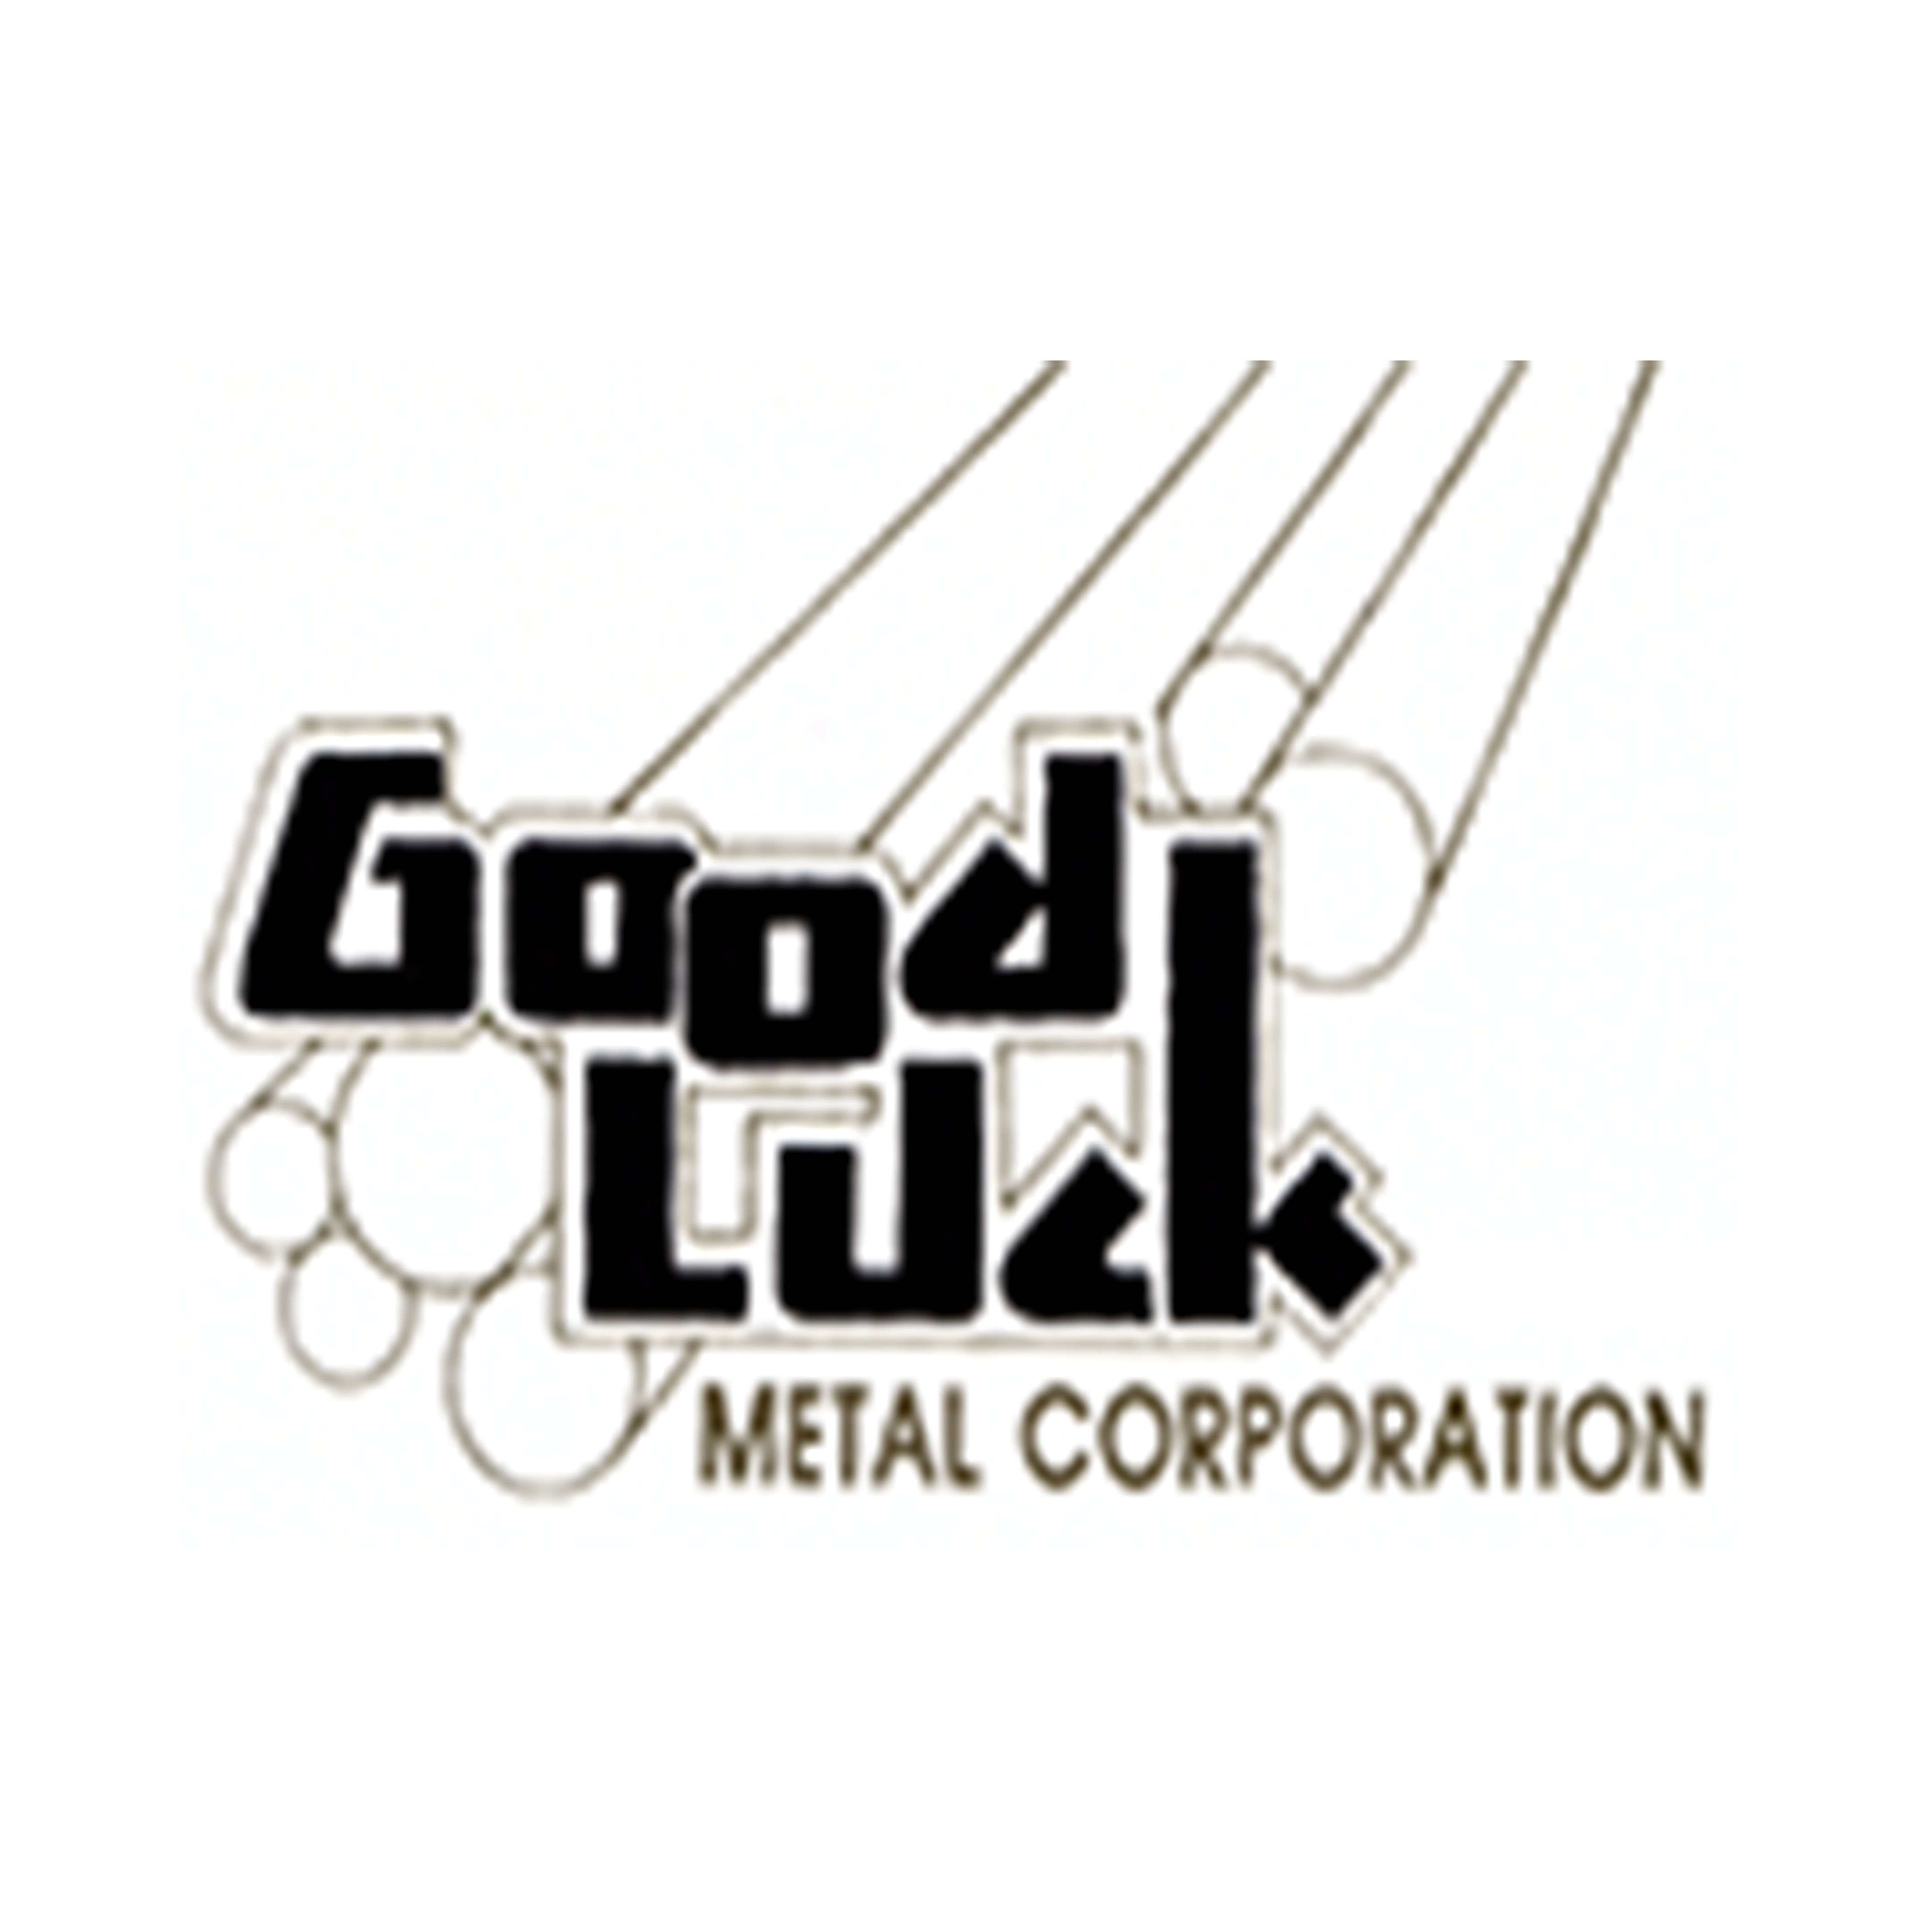 Goodluck Metal Corporation